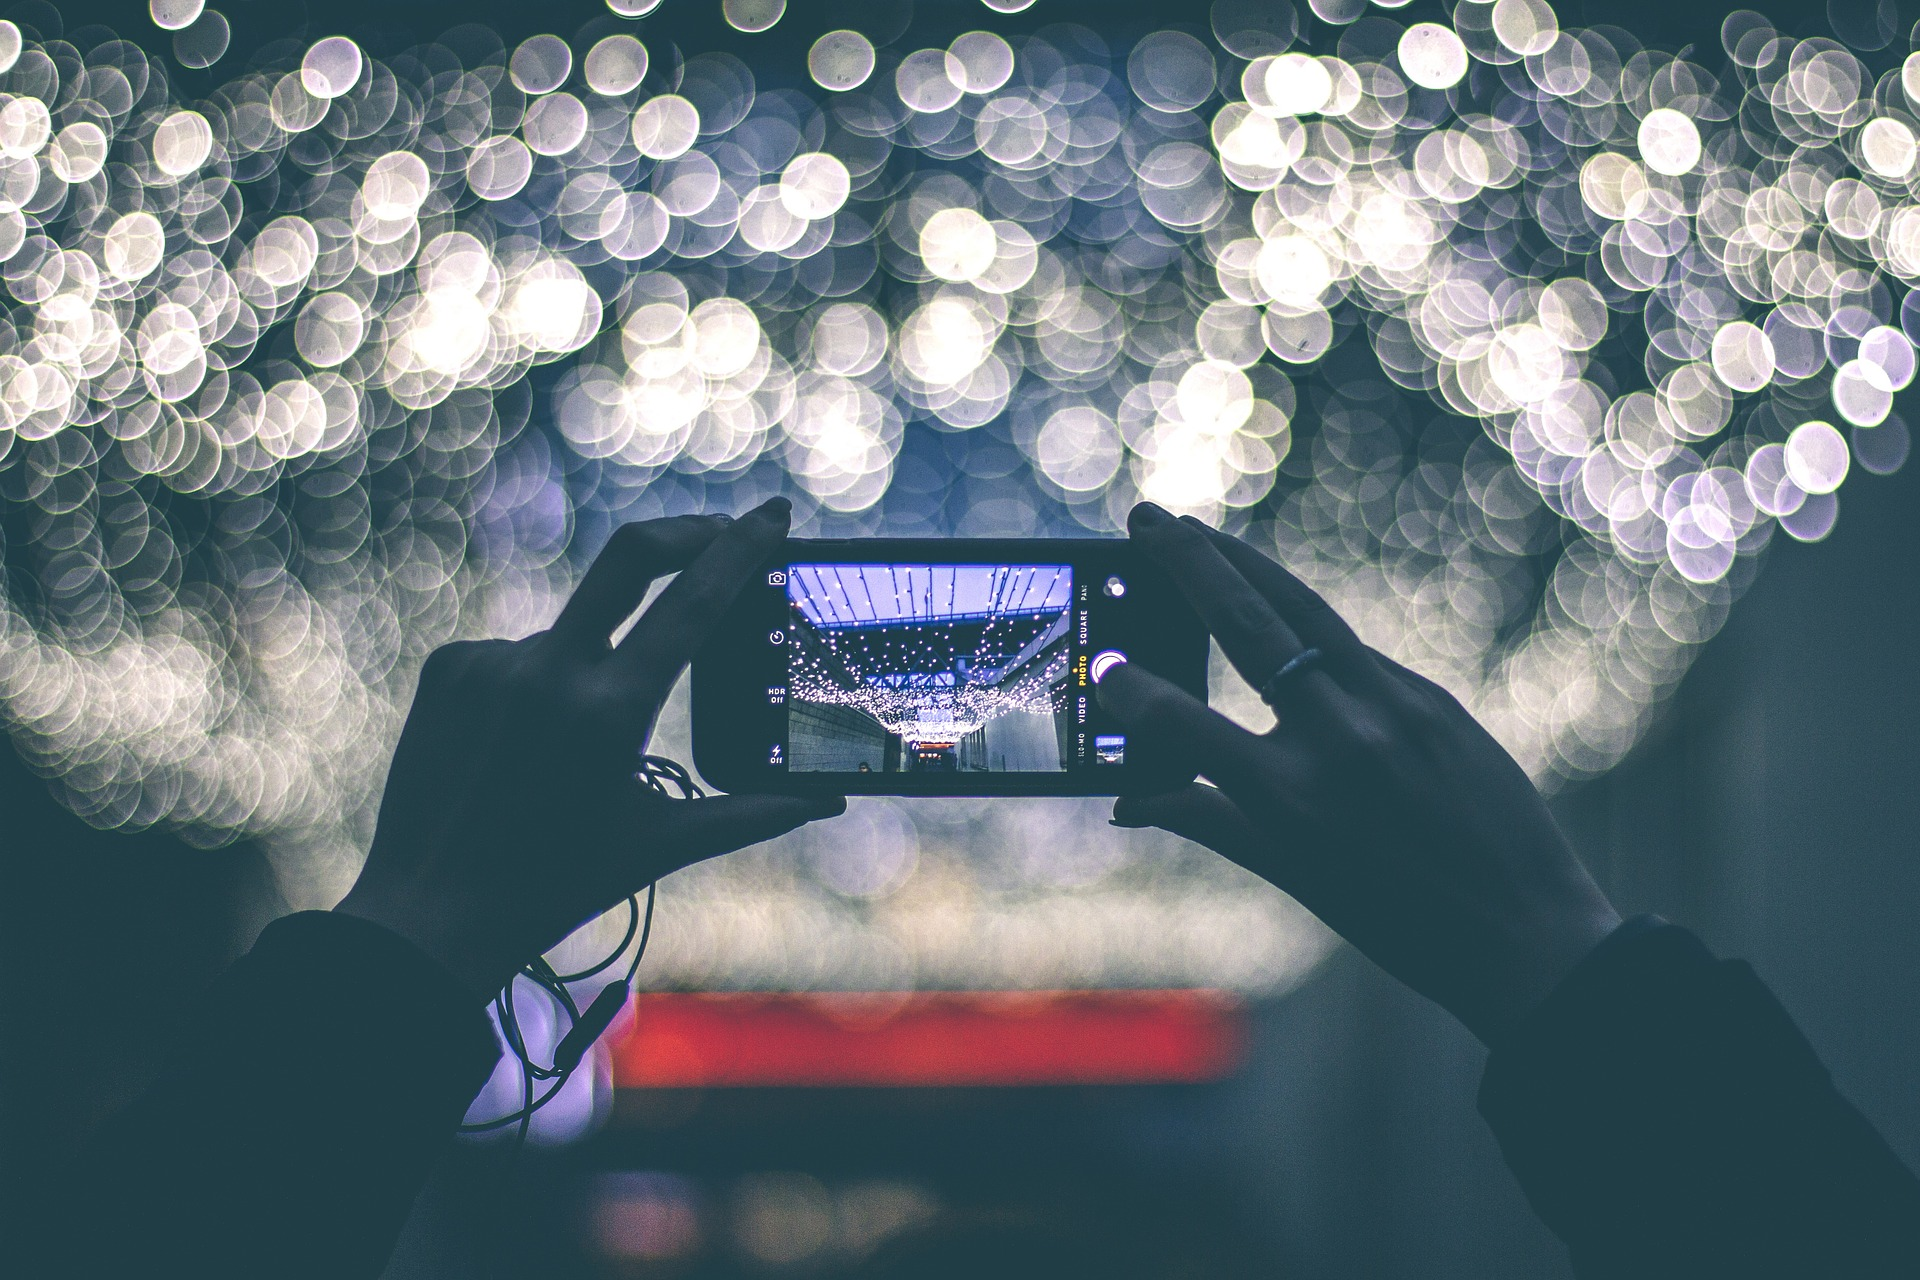 Hands holding phone horizontally facing array of fairy lights at night